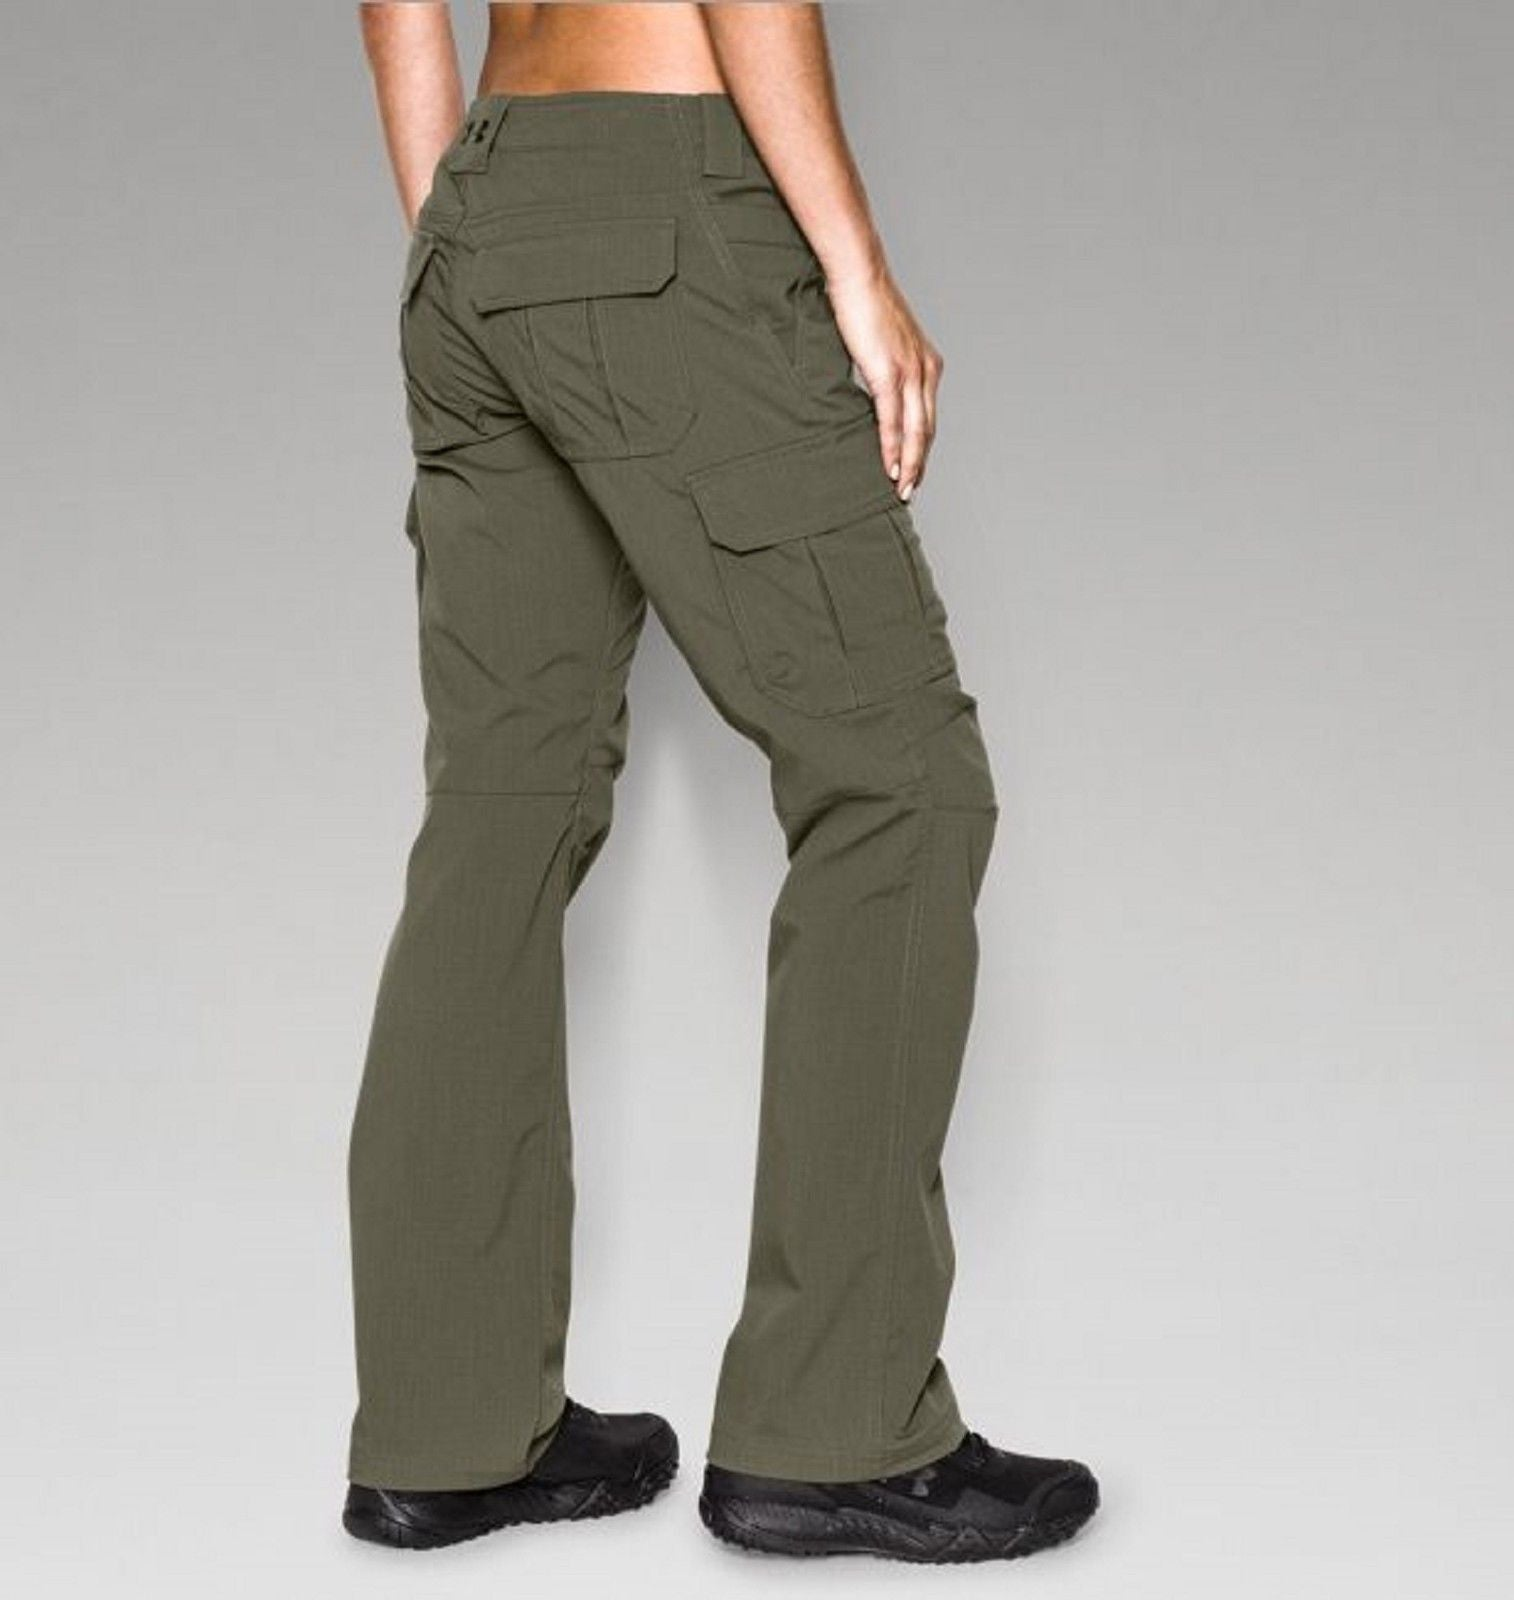 707eb89620 ... Under Armour Womens Tactical Patrol Pant - UA Loose-Fit Field Duty Cargo  Pants ...